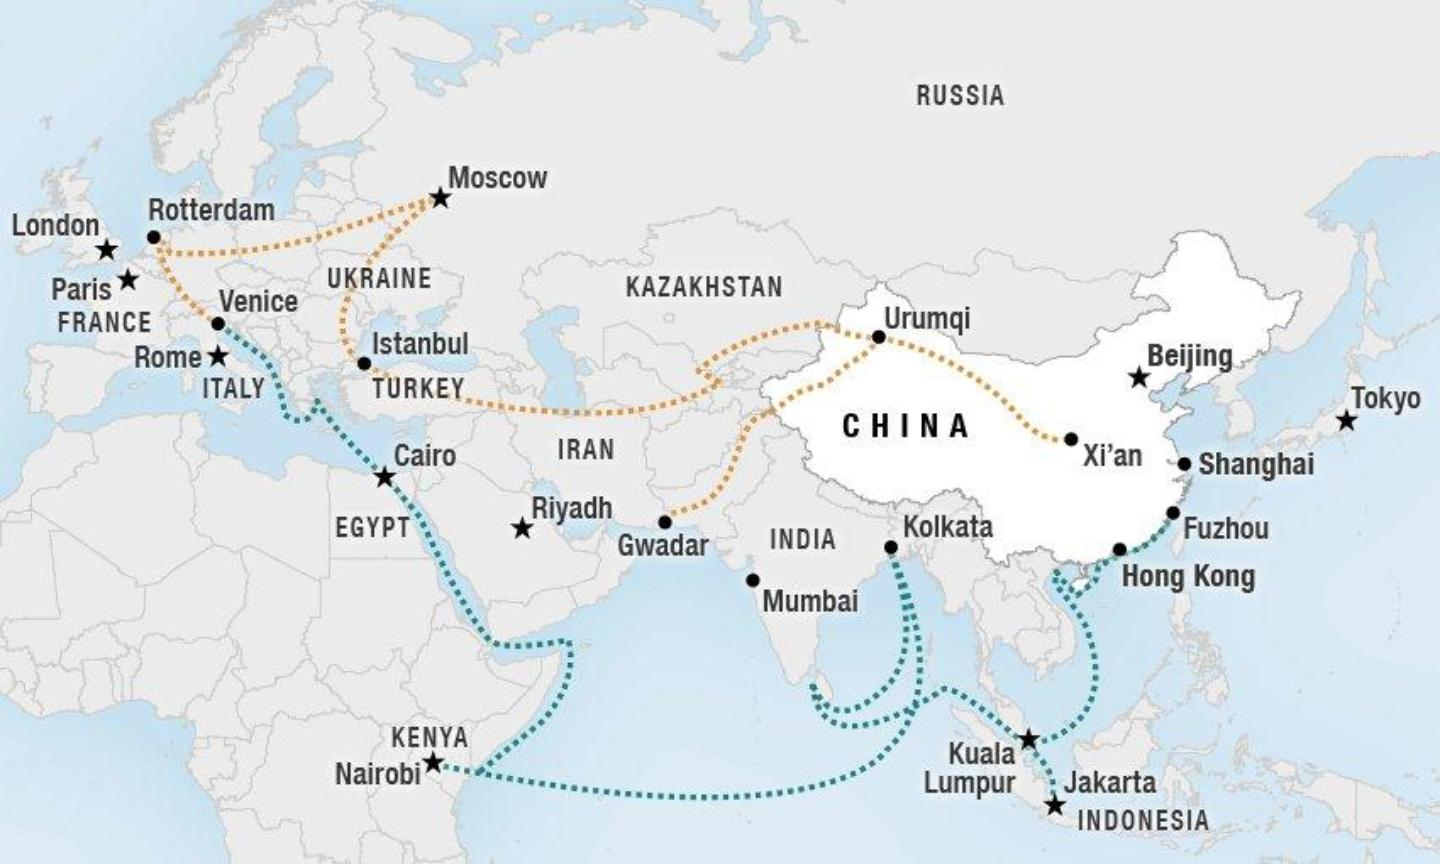 migration and globalization the silk road essays The silk road, the ancient trading walking the silk road, where globalization got started jun 27 and the silk road was the first real experiment in.